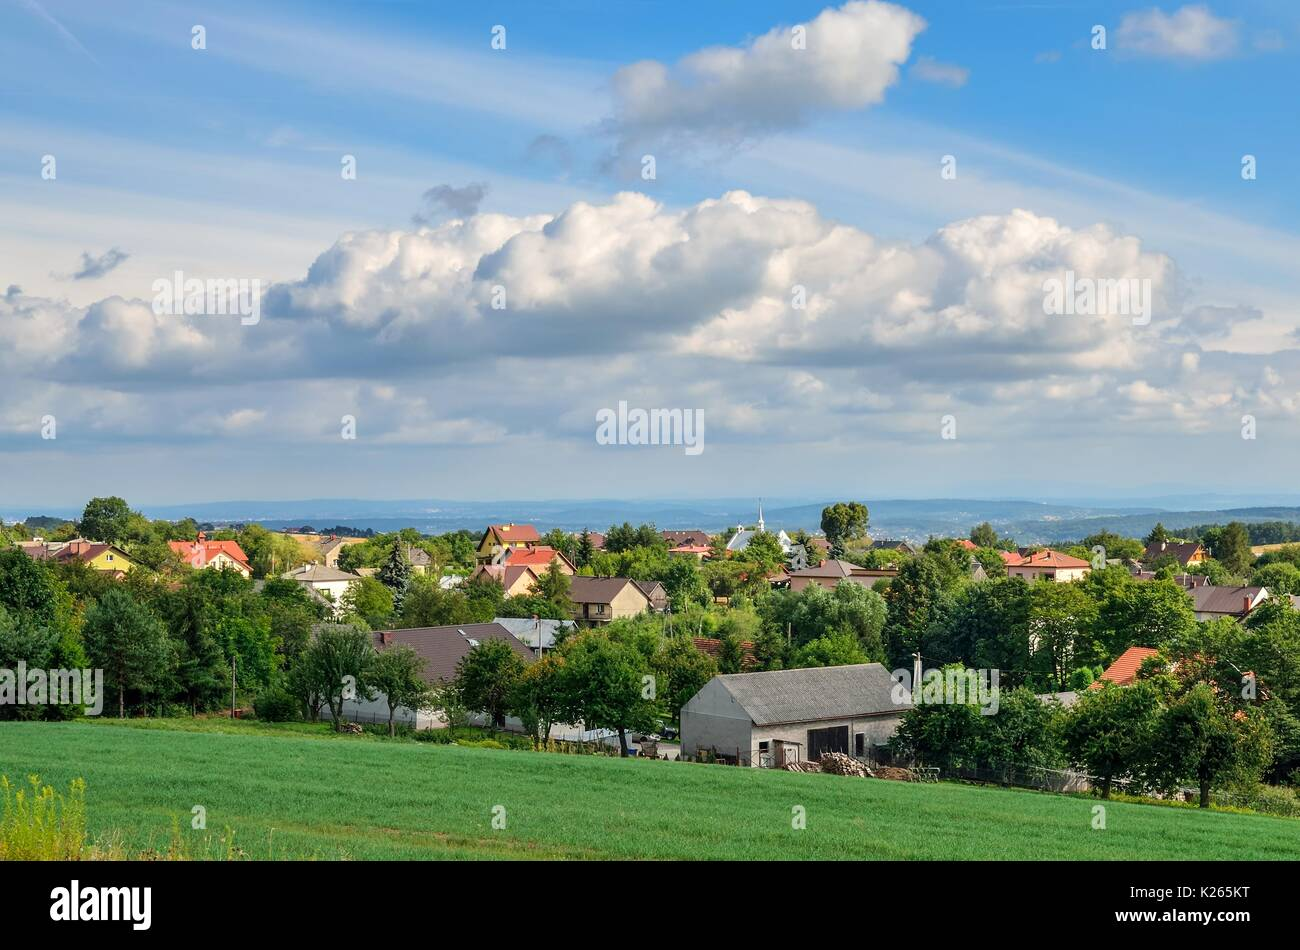 Summer rural landscape. View of the countryside and the beautiful hills. - Stock Image